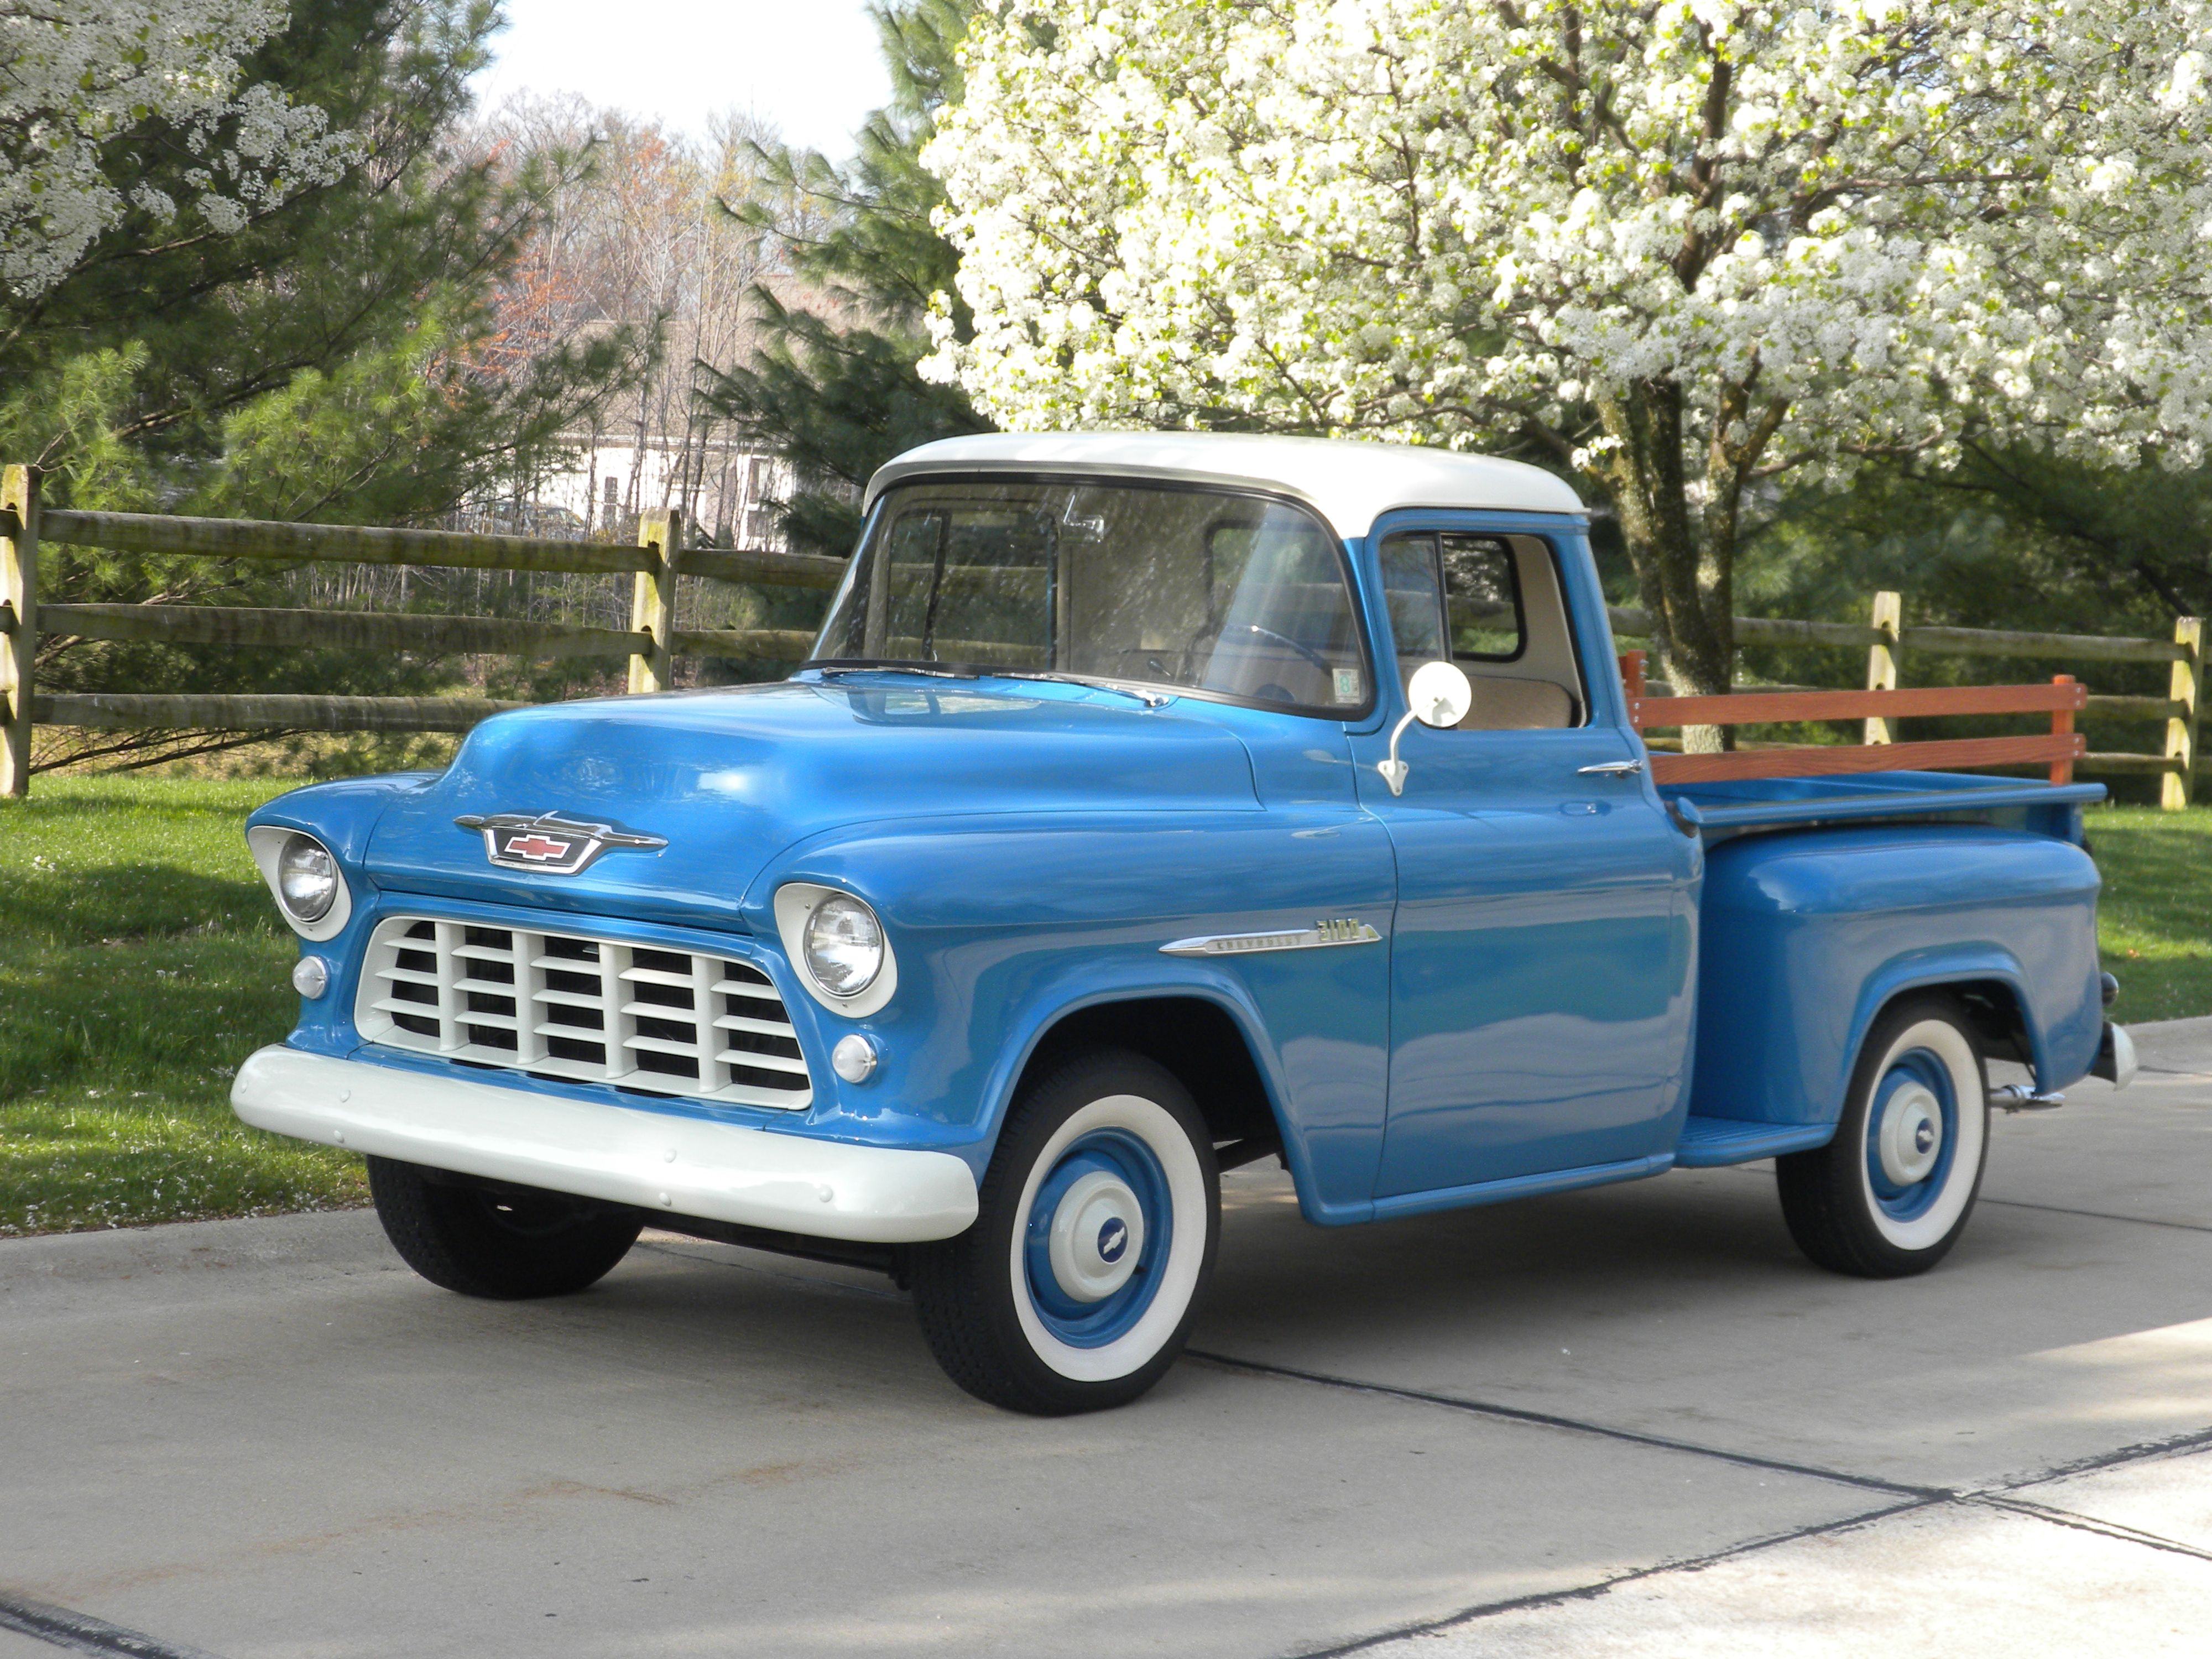 Pin By James Priewe On 555657 Chevy And Gmc Pickups Pinterest 1955 Ford F100 Value 55 Truck Chevrolet Trucks 3100 Classic